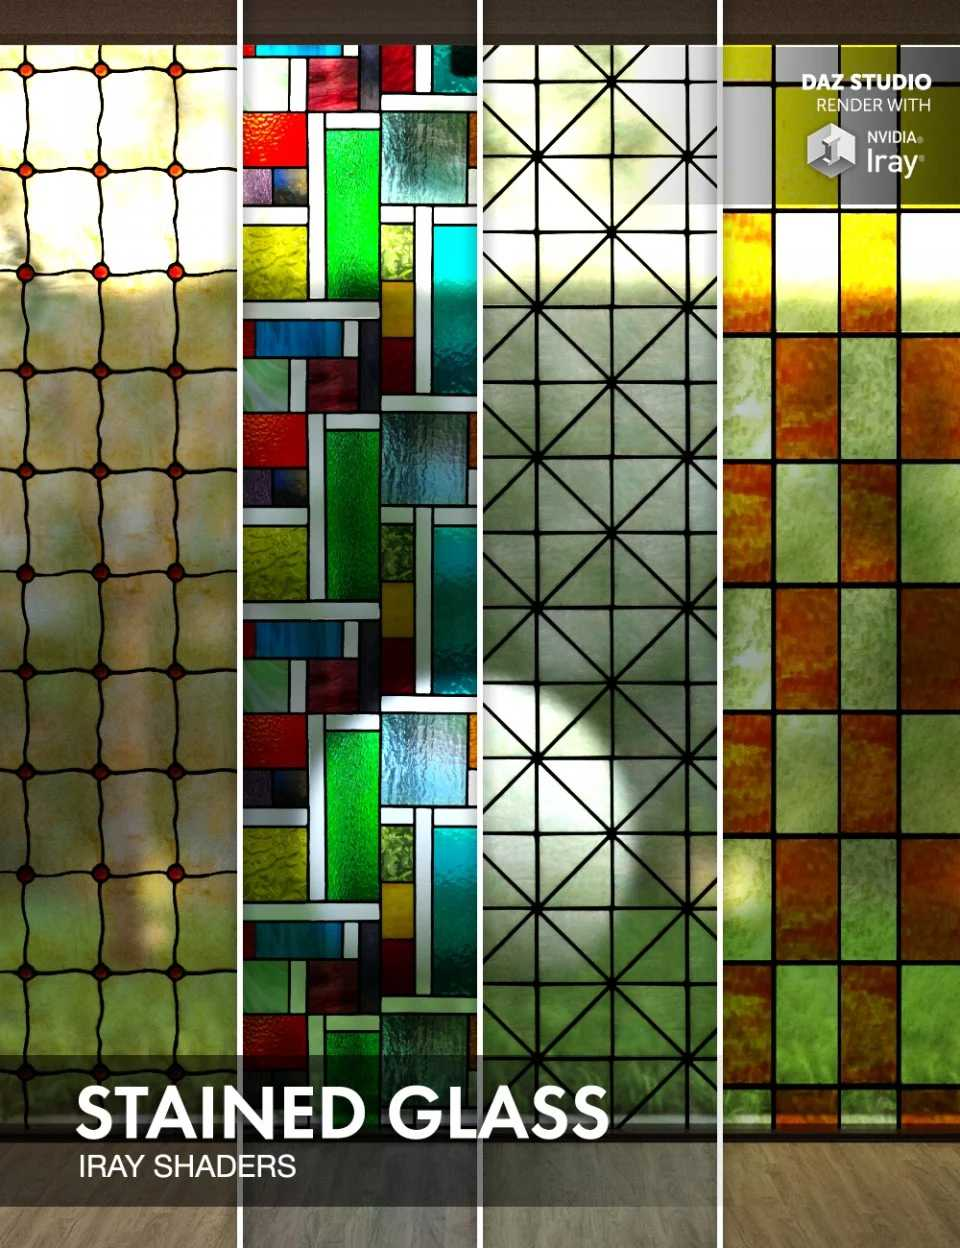 Stained Glass – Iray Shaders